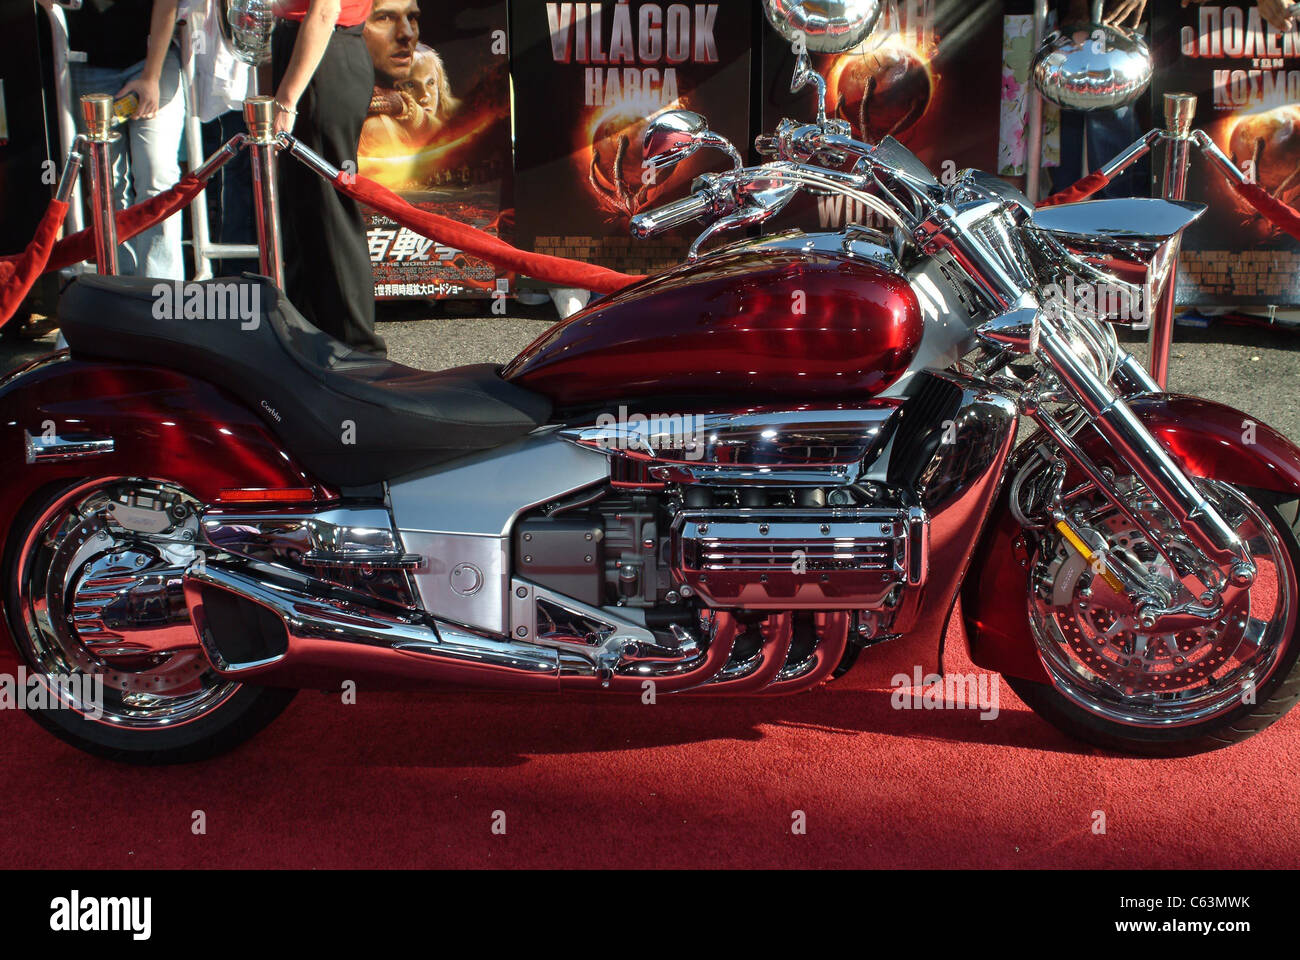 Tom Cruise's Biker at arrivals for War of the Worlds Premiere, Grauman's Chinese Theatre, Los Angeles, CA, - Stock Image